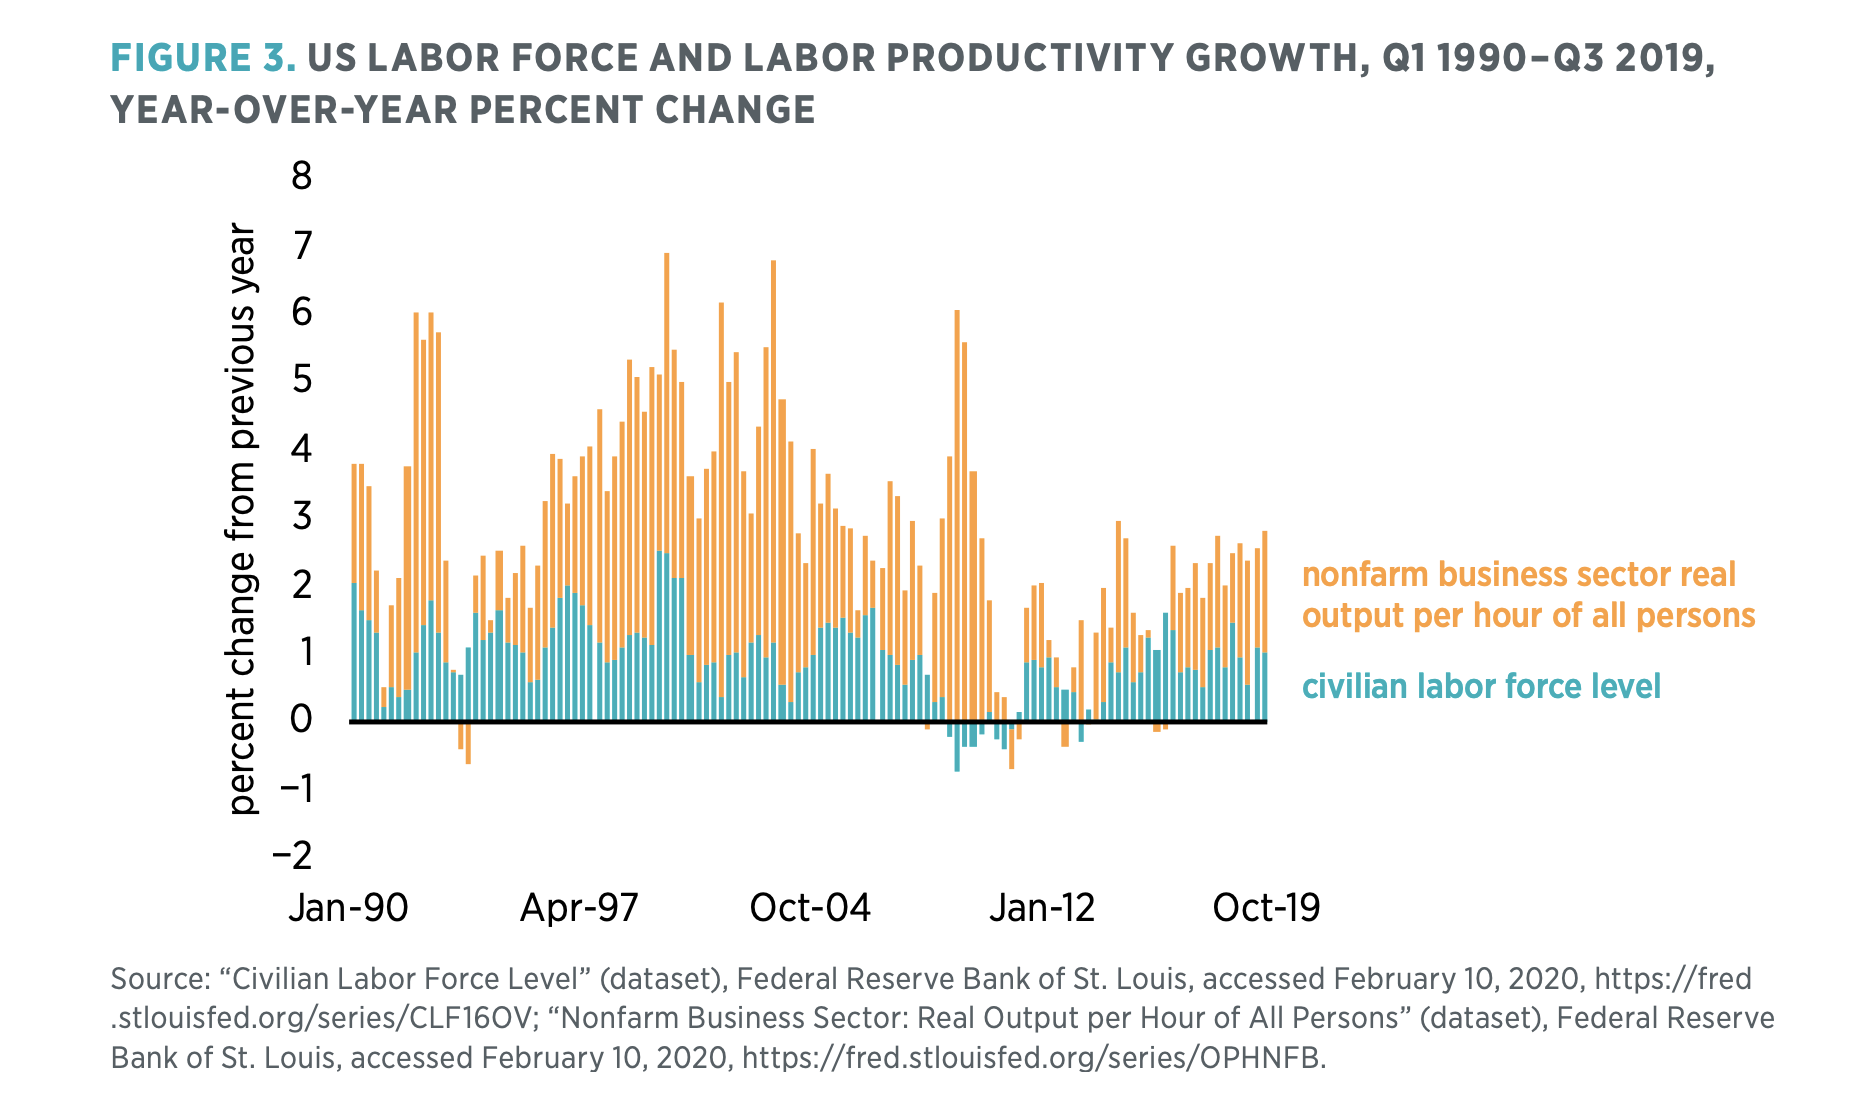 Figure 3. US Labor Force and Labor Productivity Growth, Q1 1990–Q3 2019, Year-over-Year Percent Change